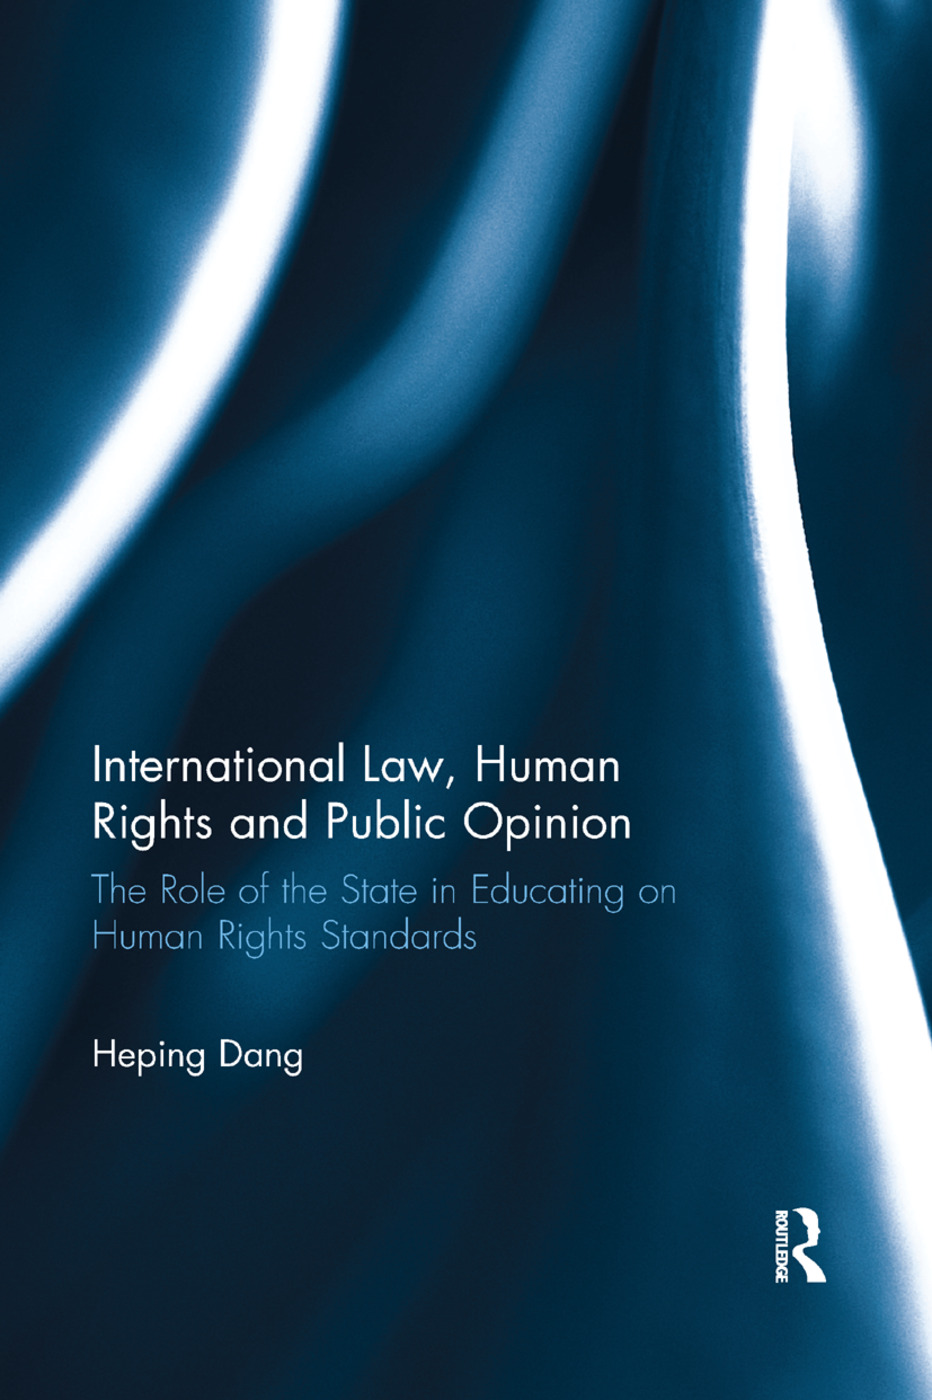 International Law, Human Rights and Public Opinion: The Role of the State in Educating on Human Rights Standards book cover